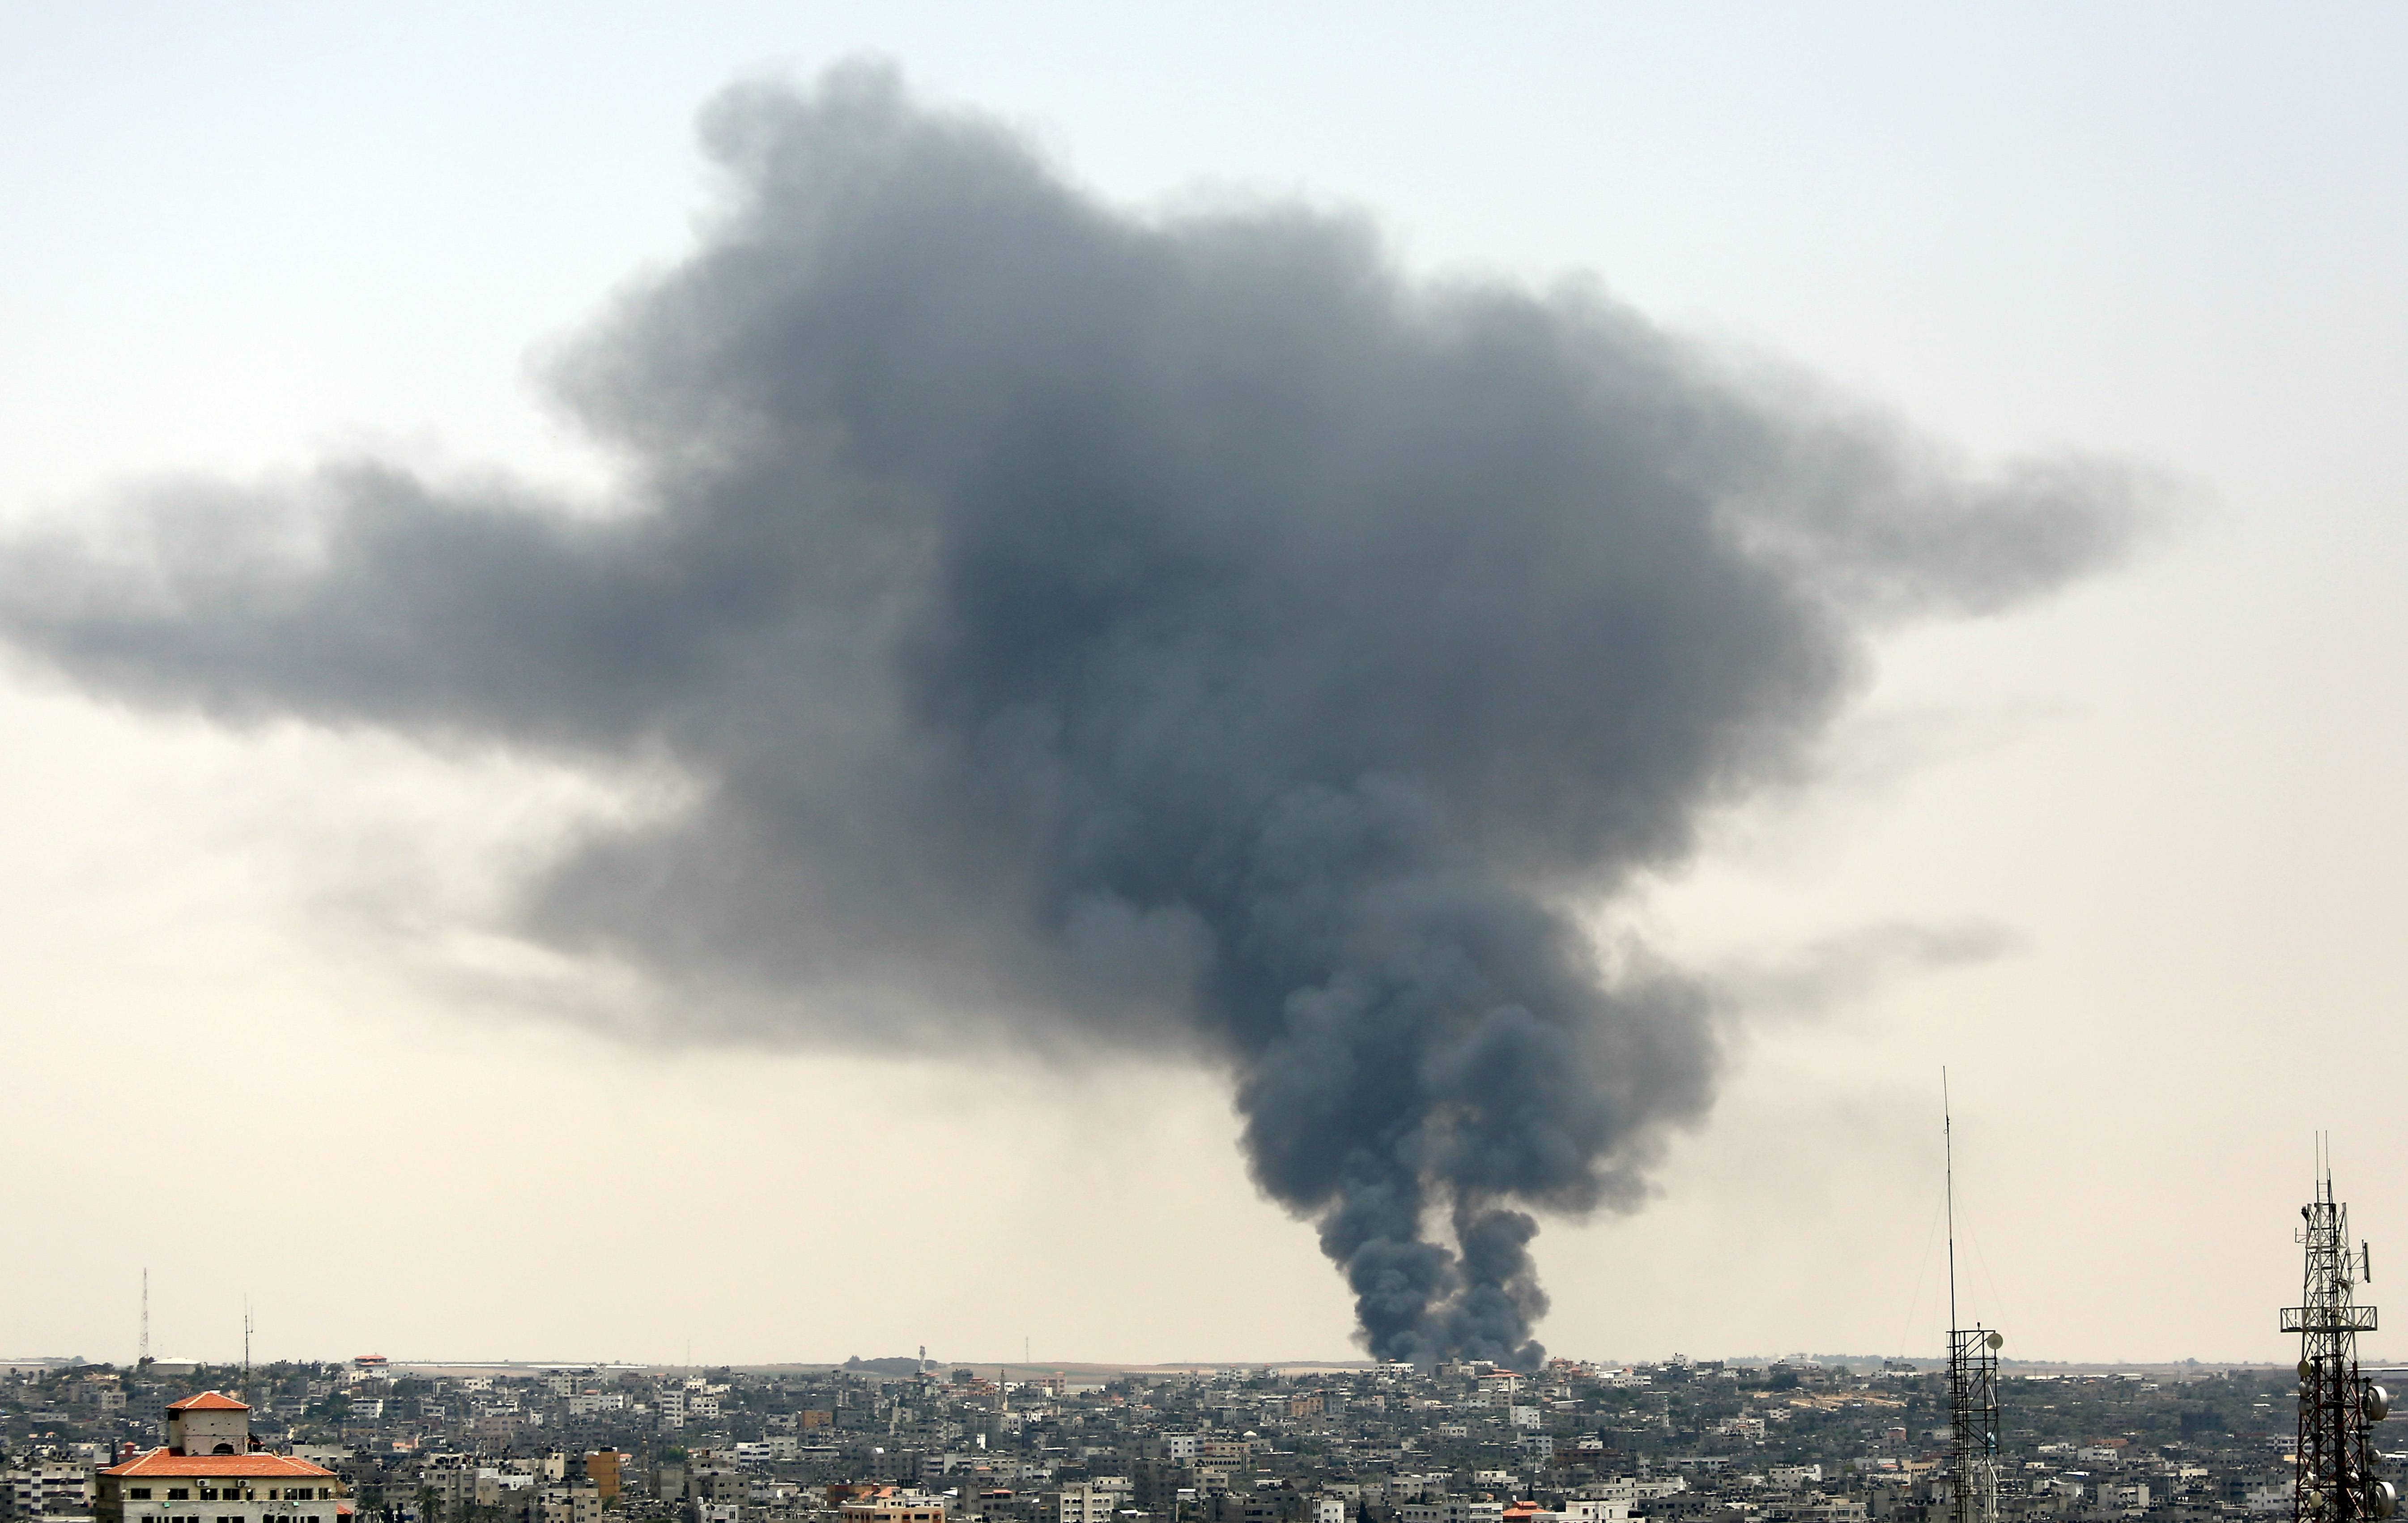 Smoke rises after a cargo crossing between Israel and Gaza was shelled on Saturday.